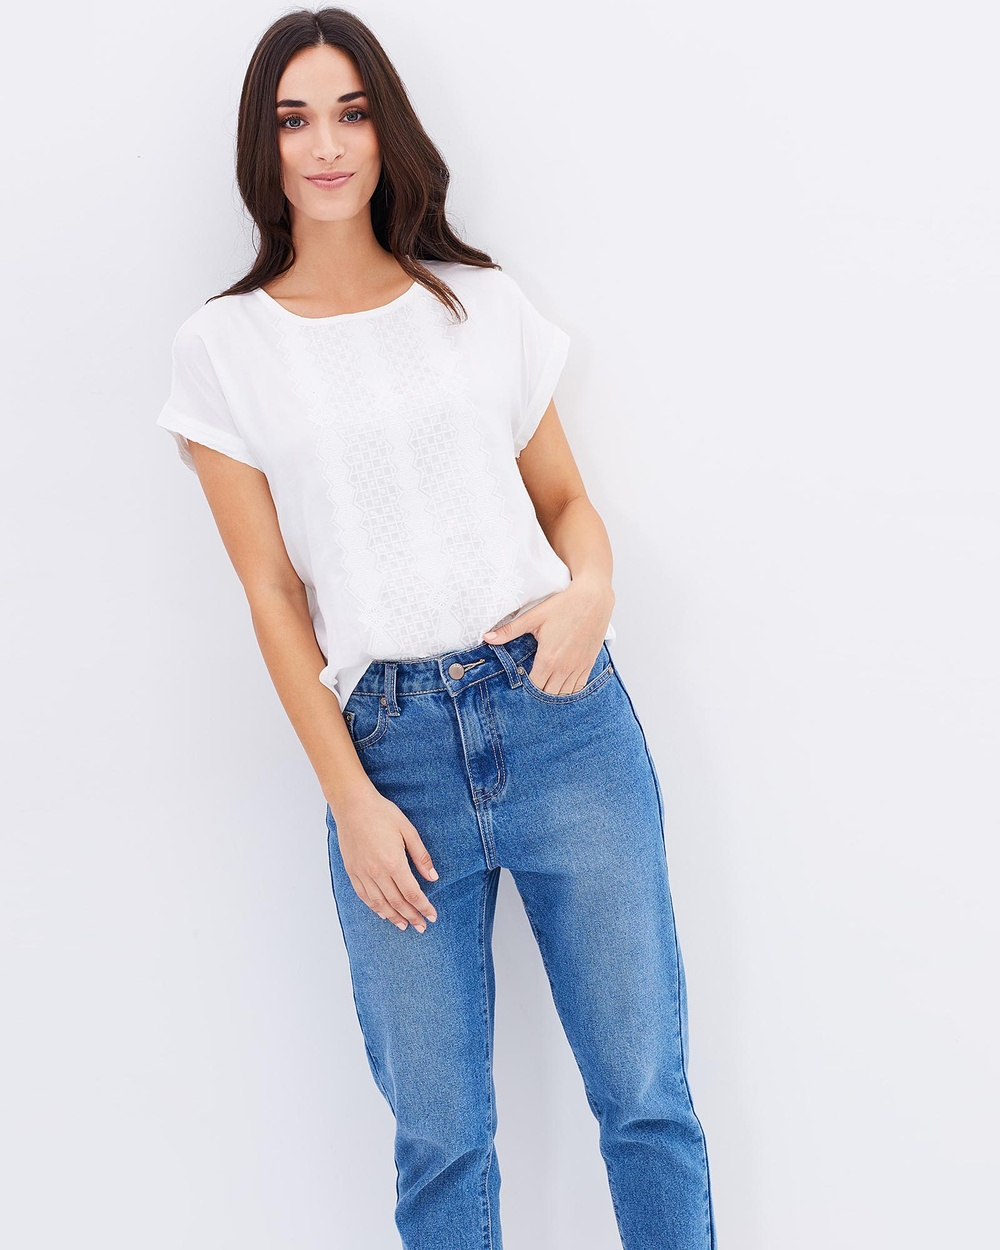 Kaja Clothing Jennica Top Tops Off-White Jennica Top